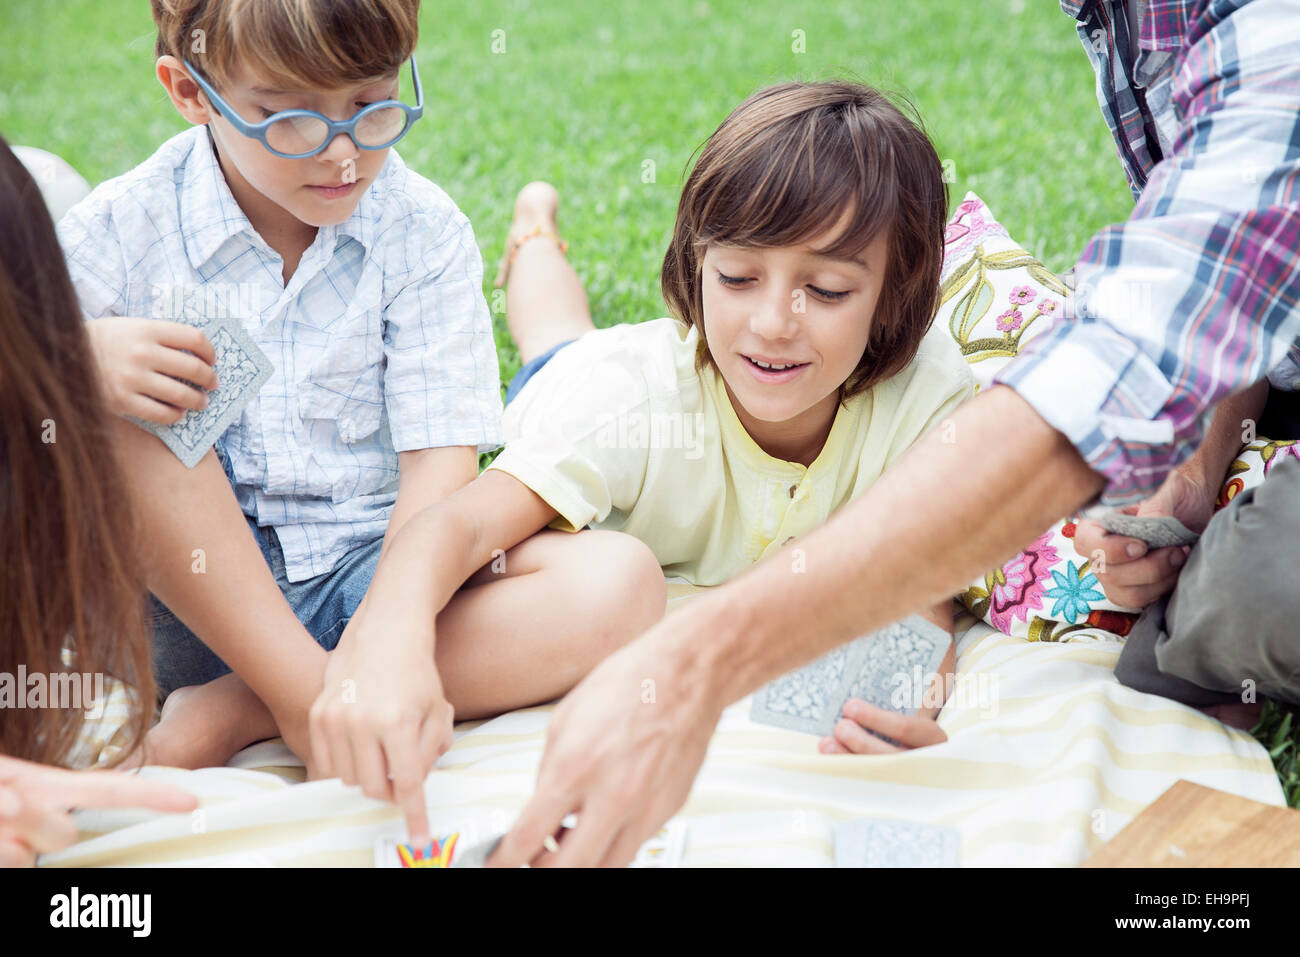 Boys playing cards at family picnic - Stock Image